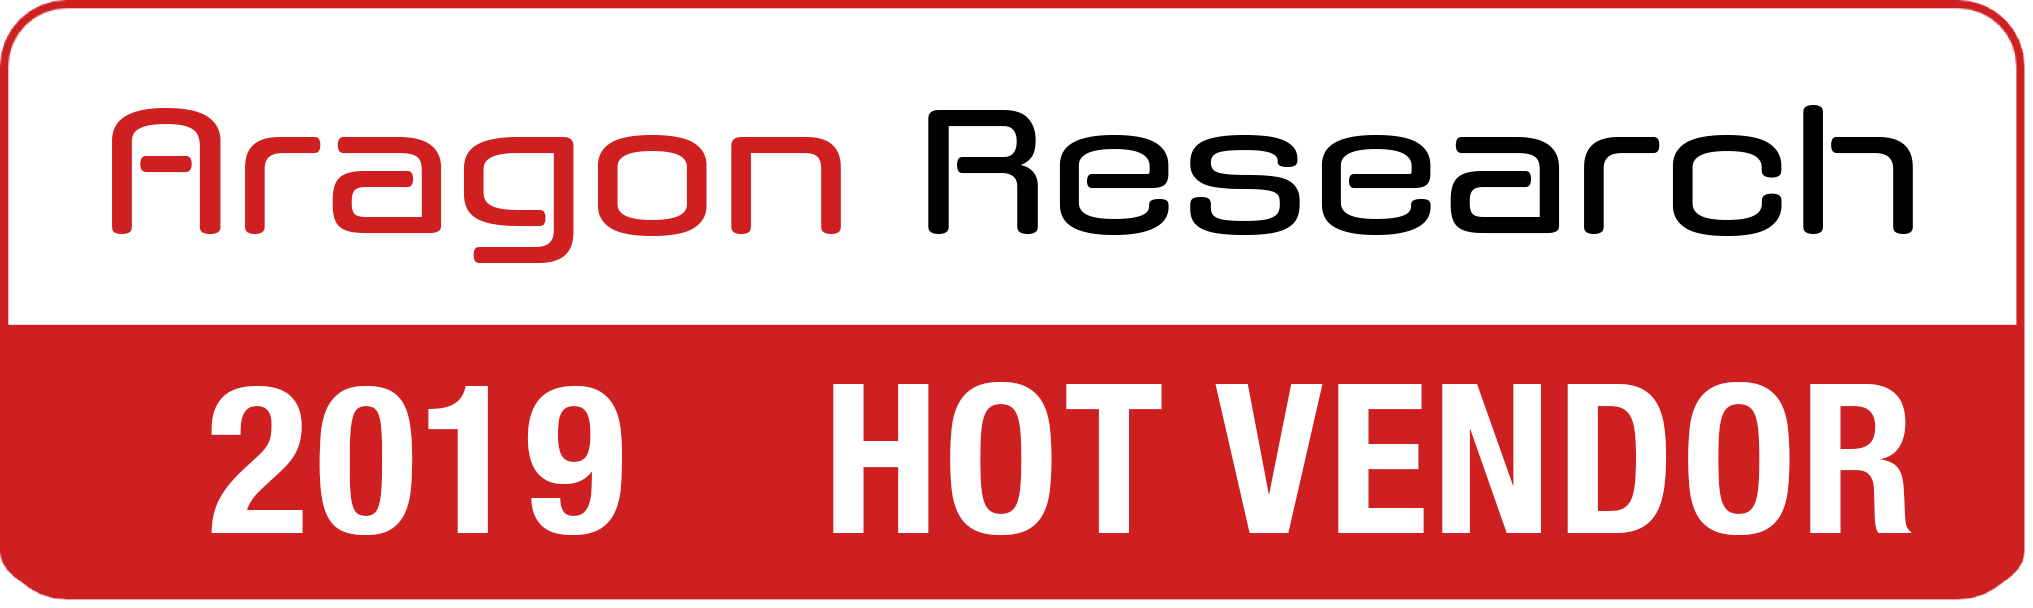 Aragon Research Hot Vendor 2019